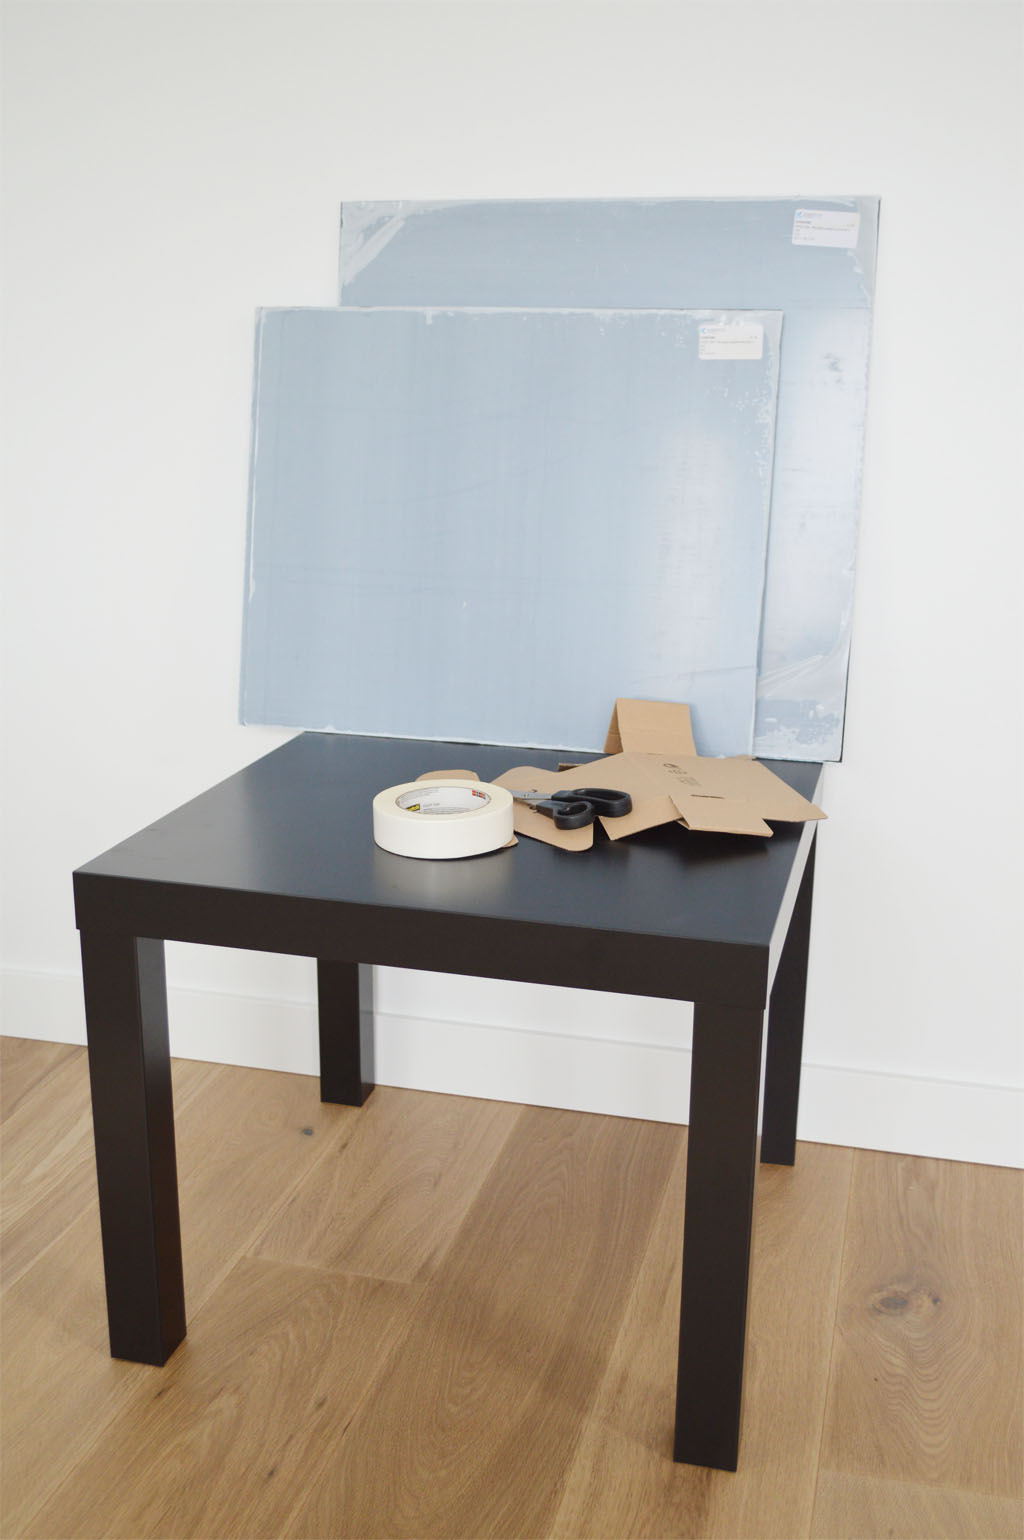 Designer Tisch Ikea Hack Lack Table With Plexiglas Ikea Hack Lack Tisch Mit